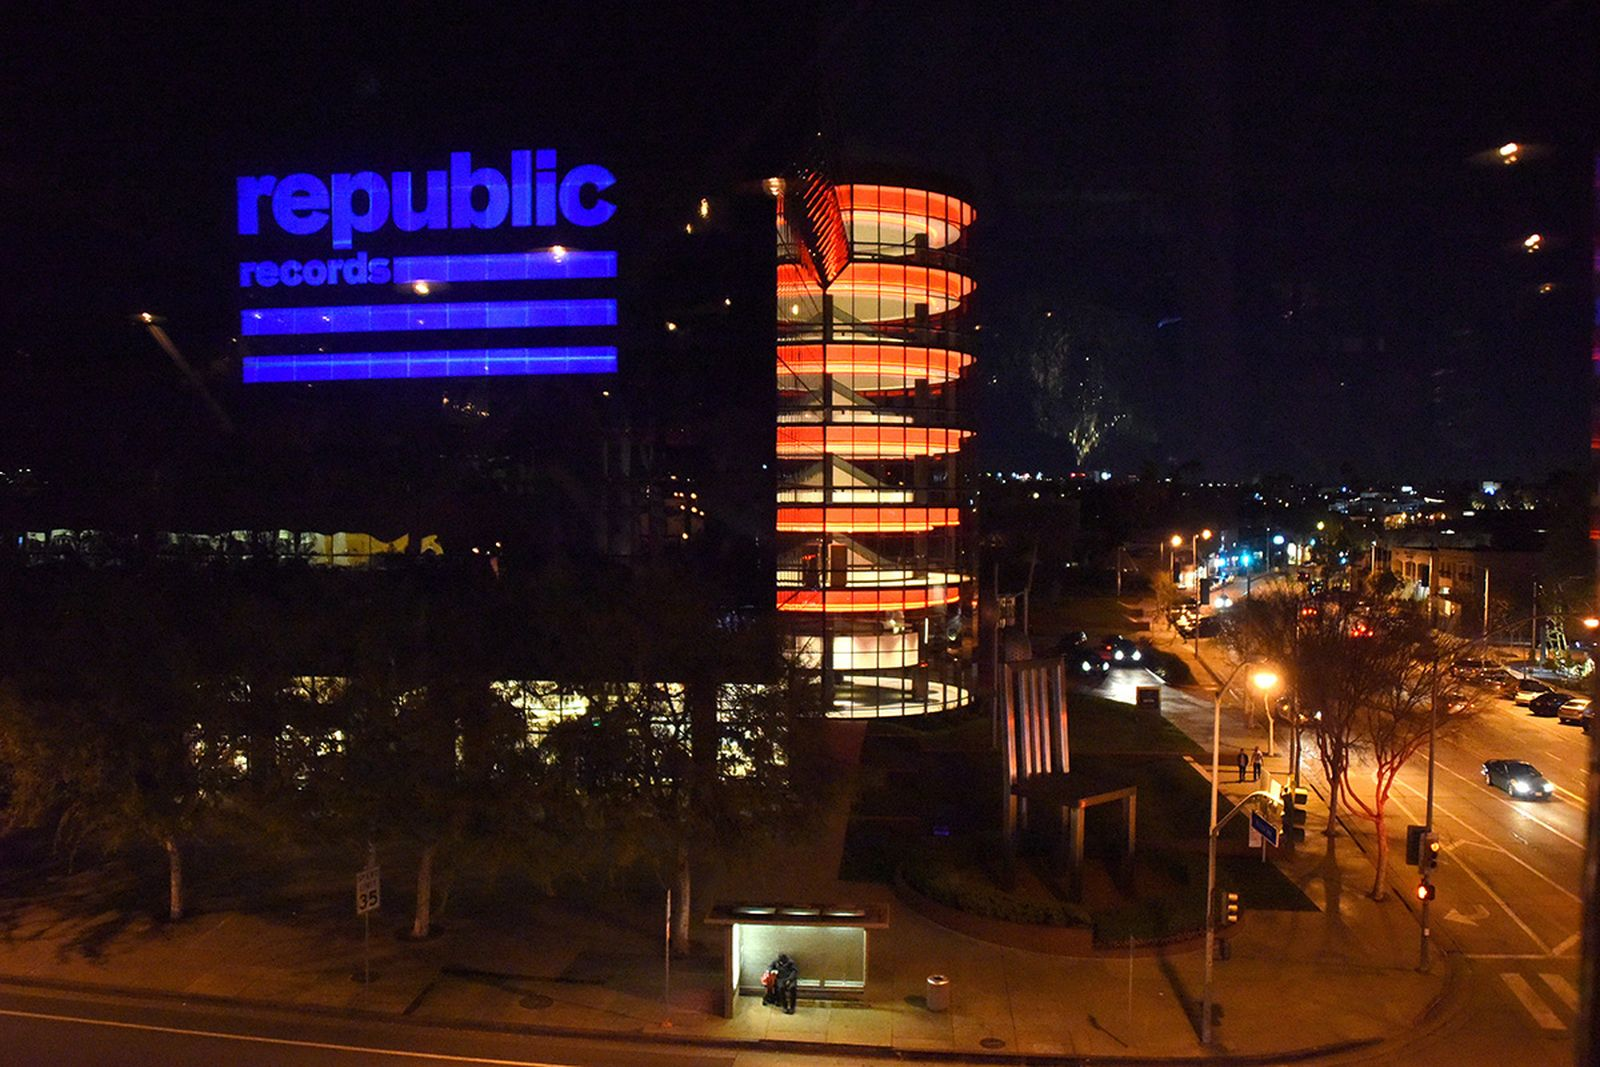 A view of Pacific Design Center at a celebration of music with Republic Records